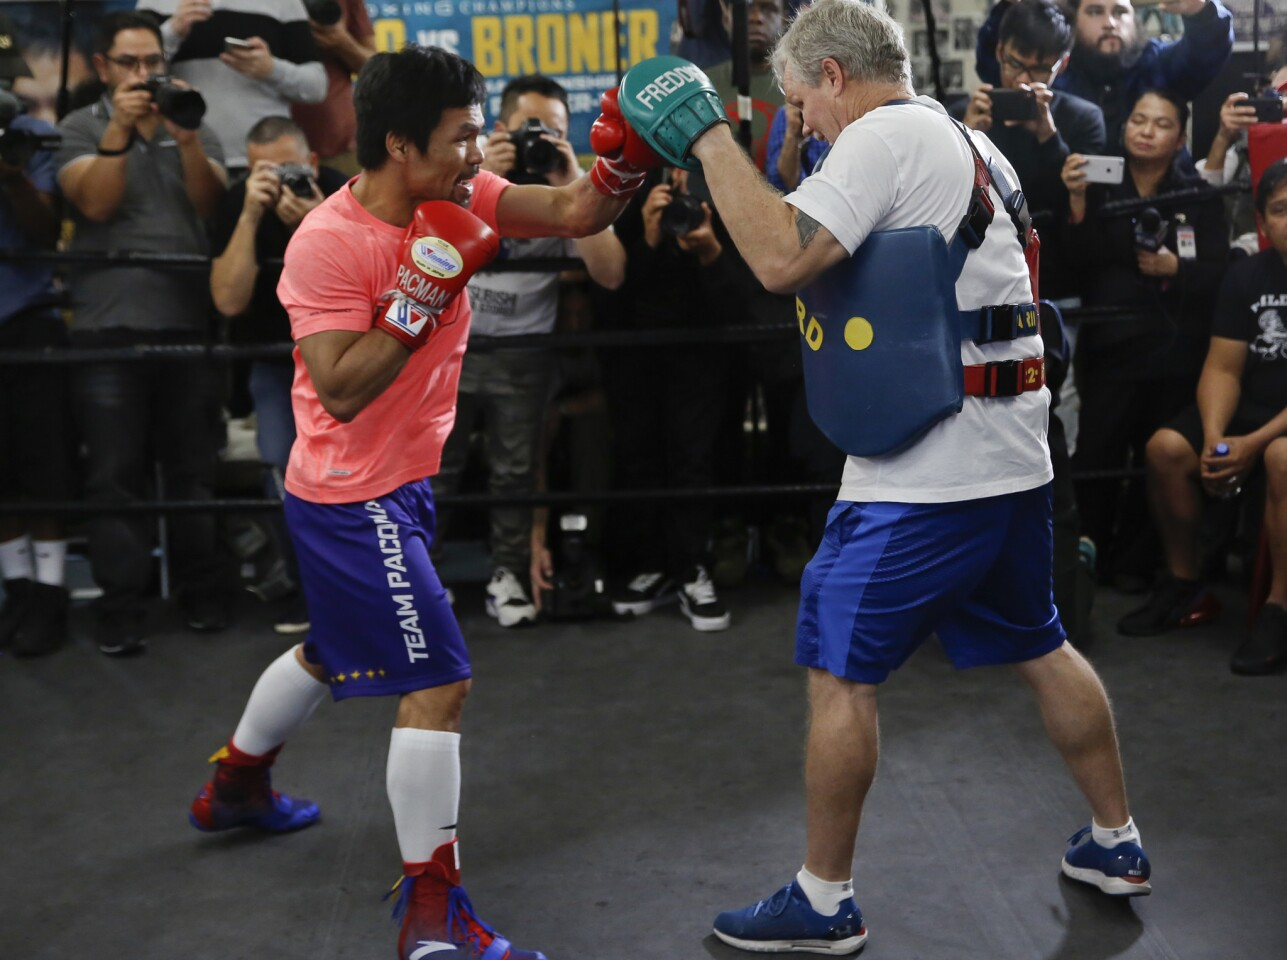 Manny Pacquiao, left, works out with trainer Freddie Roach at a boxing club in Los Angeles, Wednesday, Jan. 9, 2019. Pacquiao is scheduled to defend his WBA welterweight title against Adrien Broner on Jan. 19, 2019, in Las Vegas. (AP Photo/Damian Dovarganes)